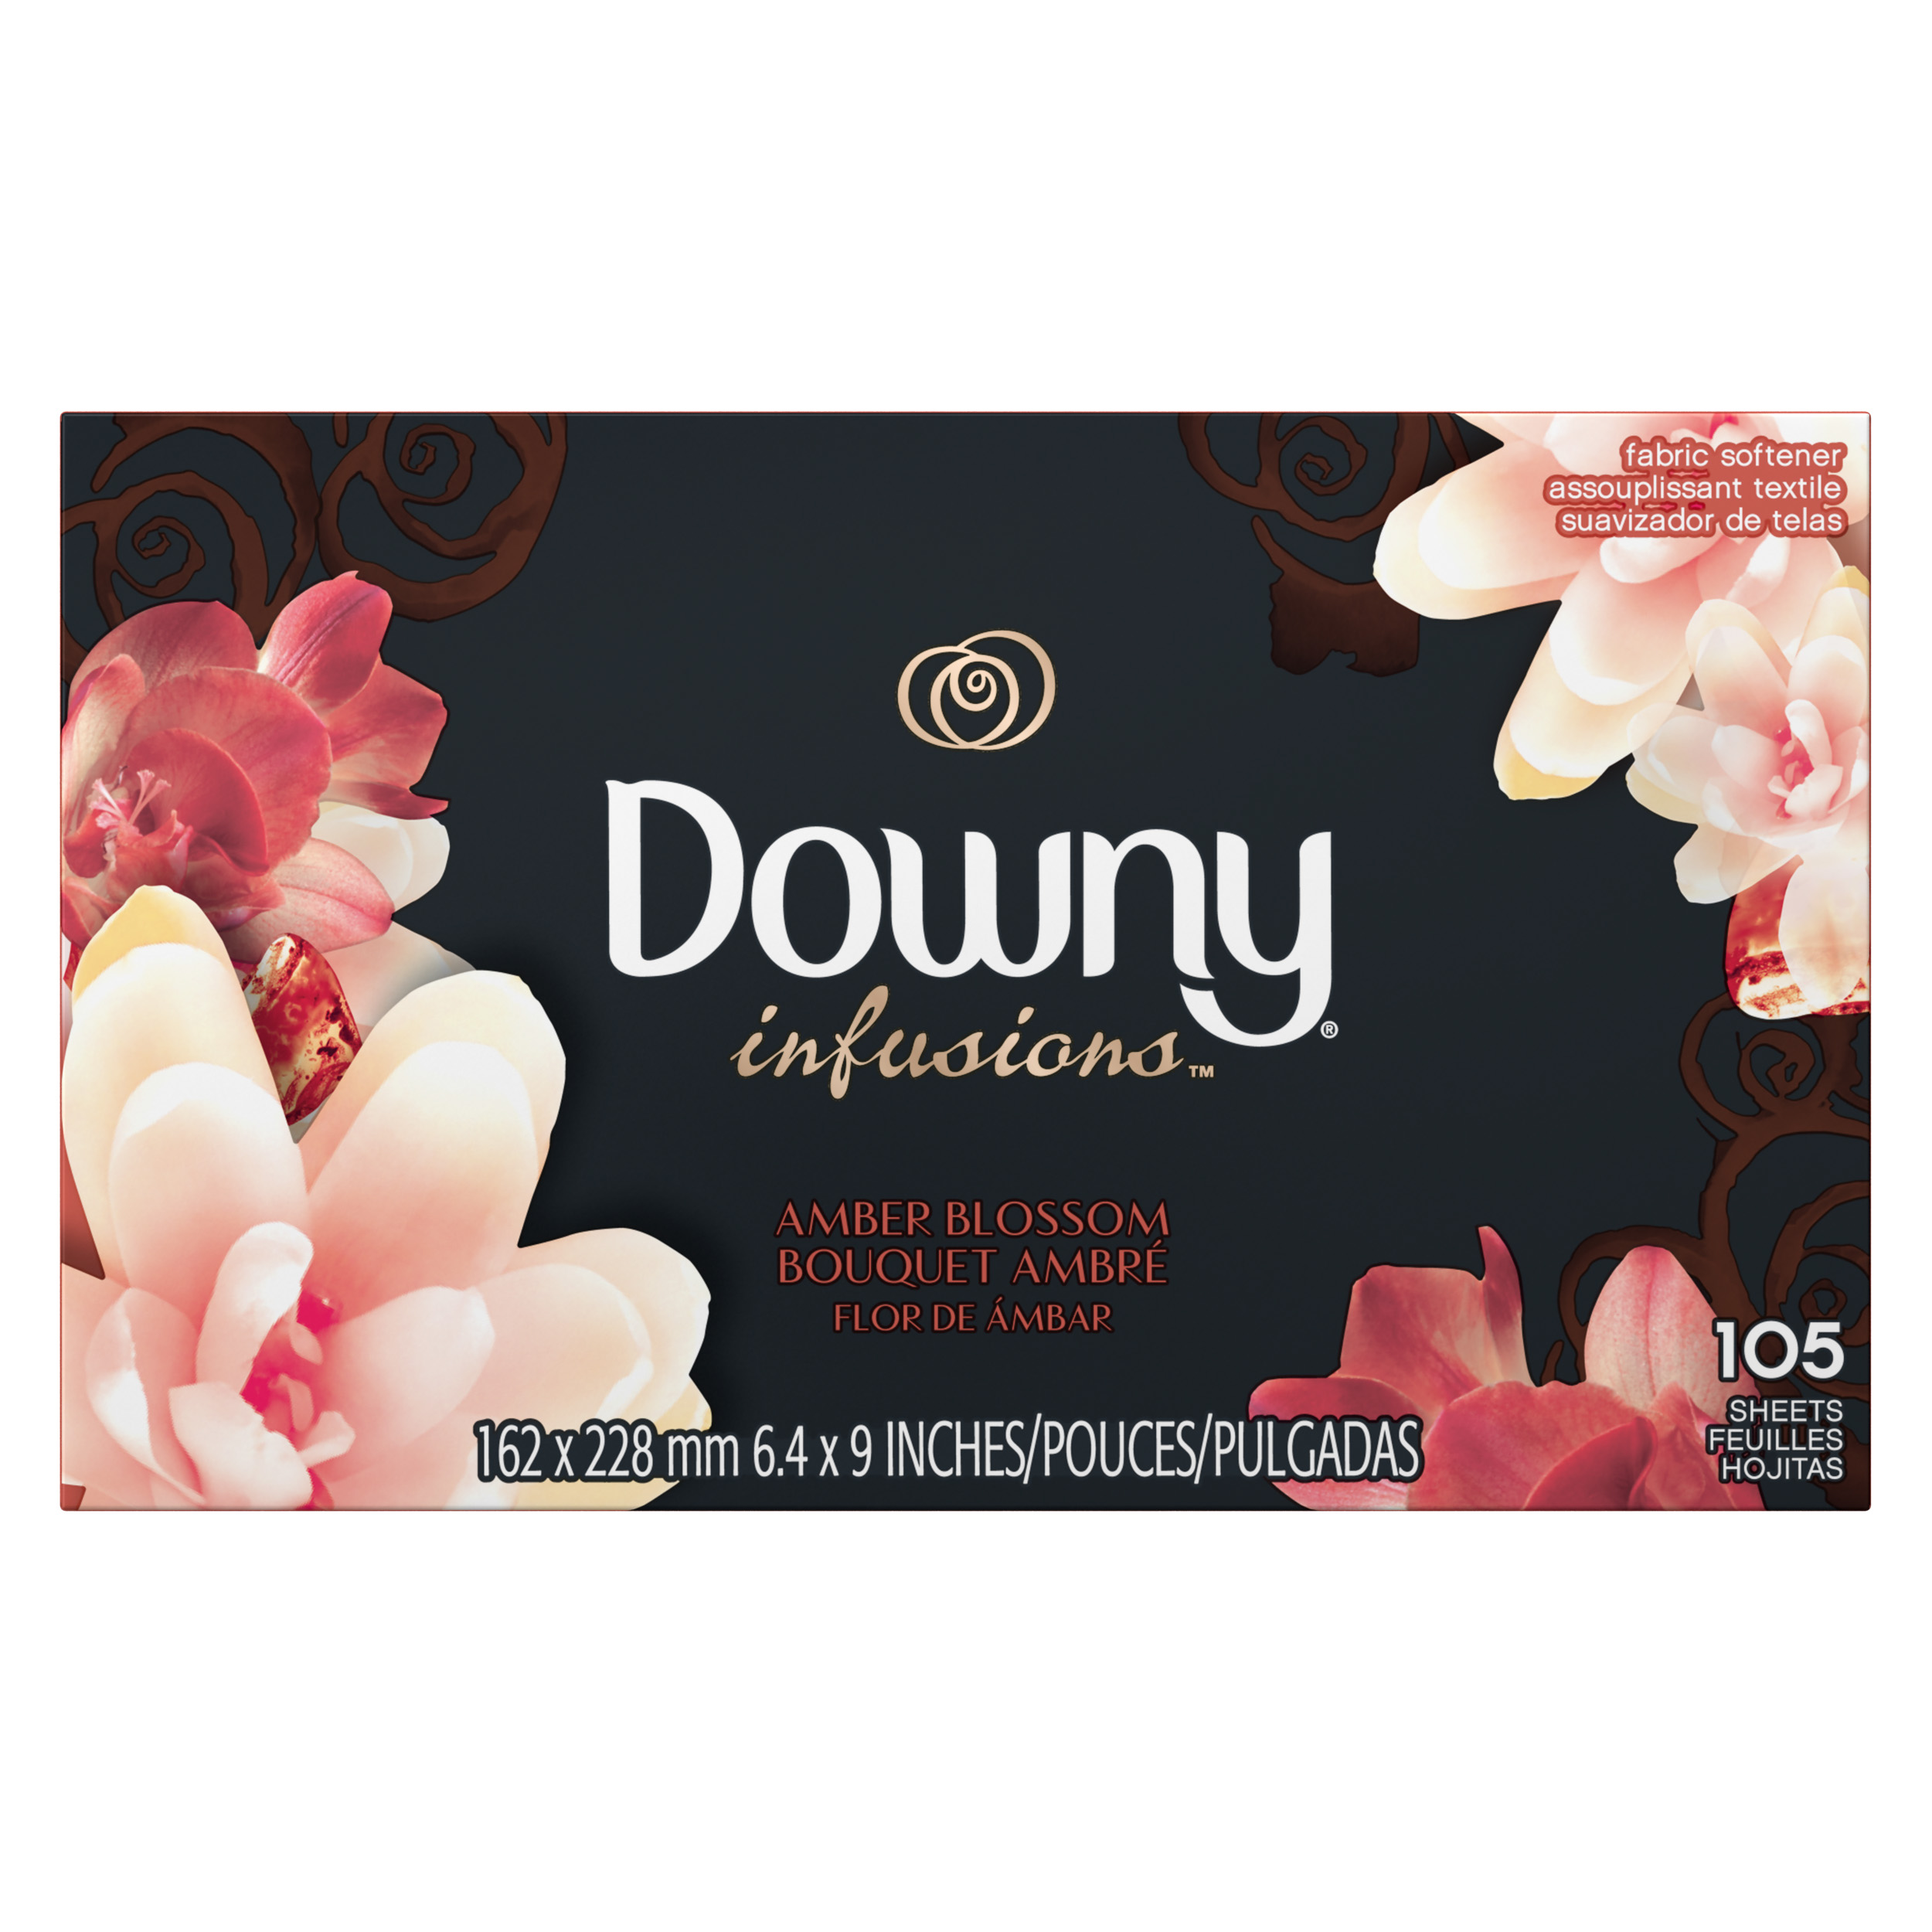 Downy Infusions Fabric Softener Dryer Sheets, Amber Blossom, 105 Count